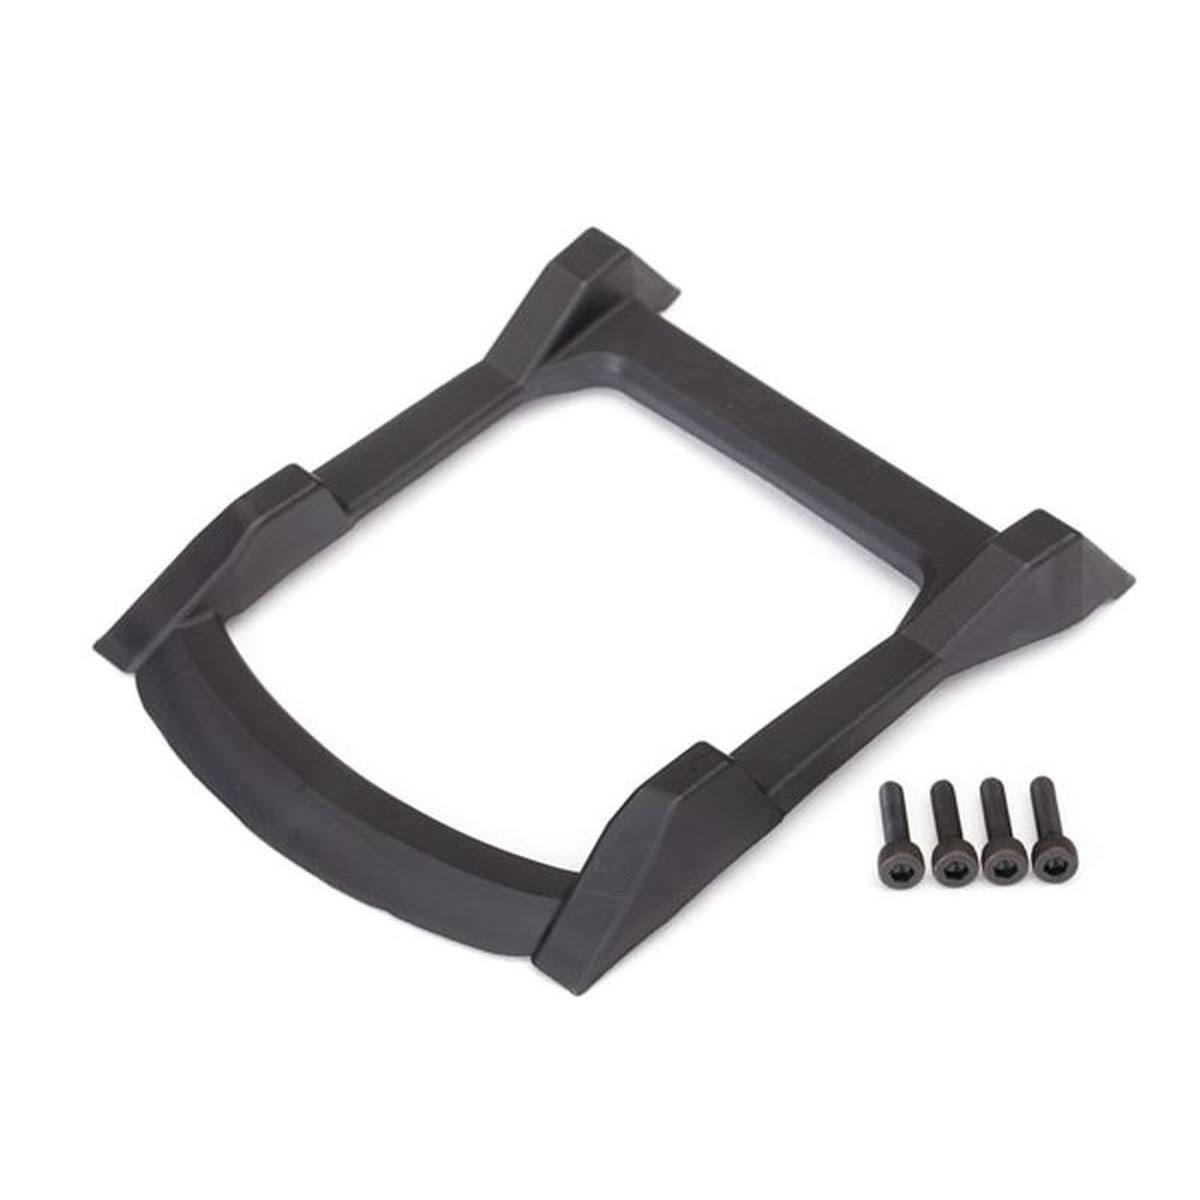 Traxxas Rustler Remote Control Roof Skid Plate - 4 x 4, Scale 1:10